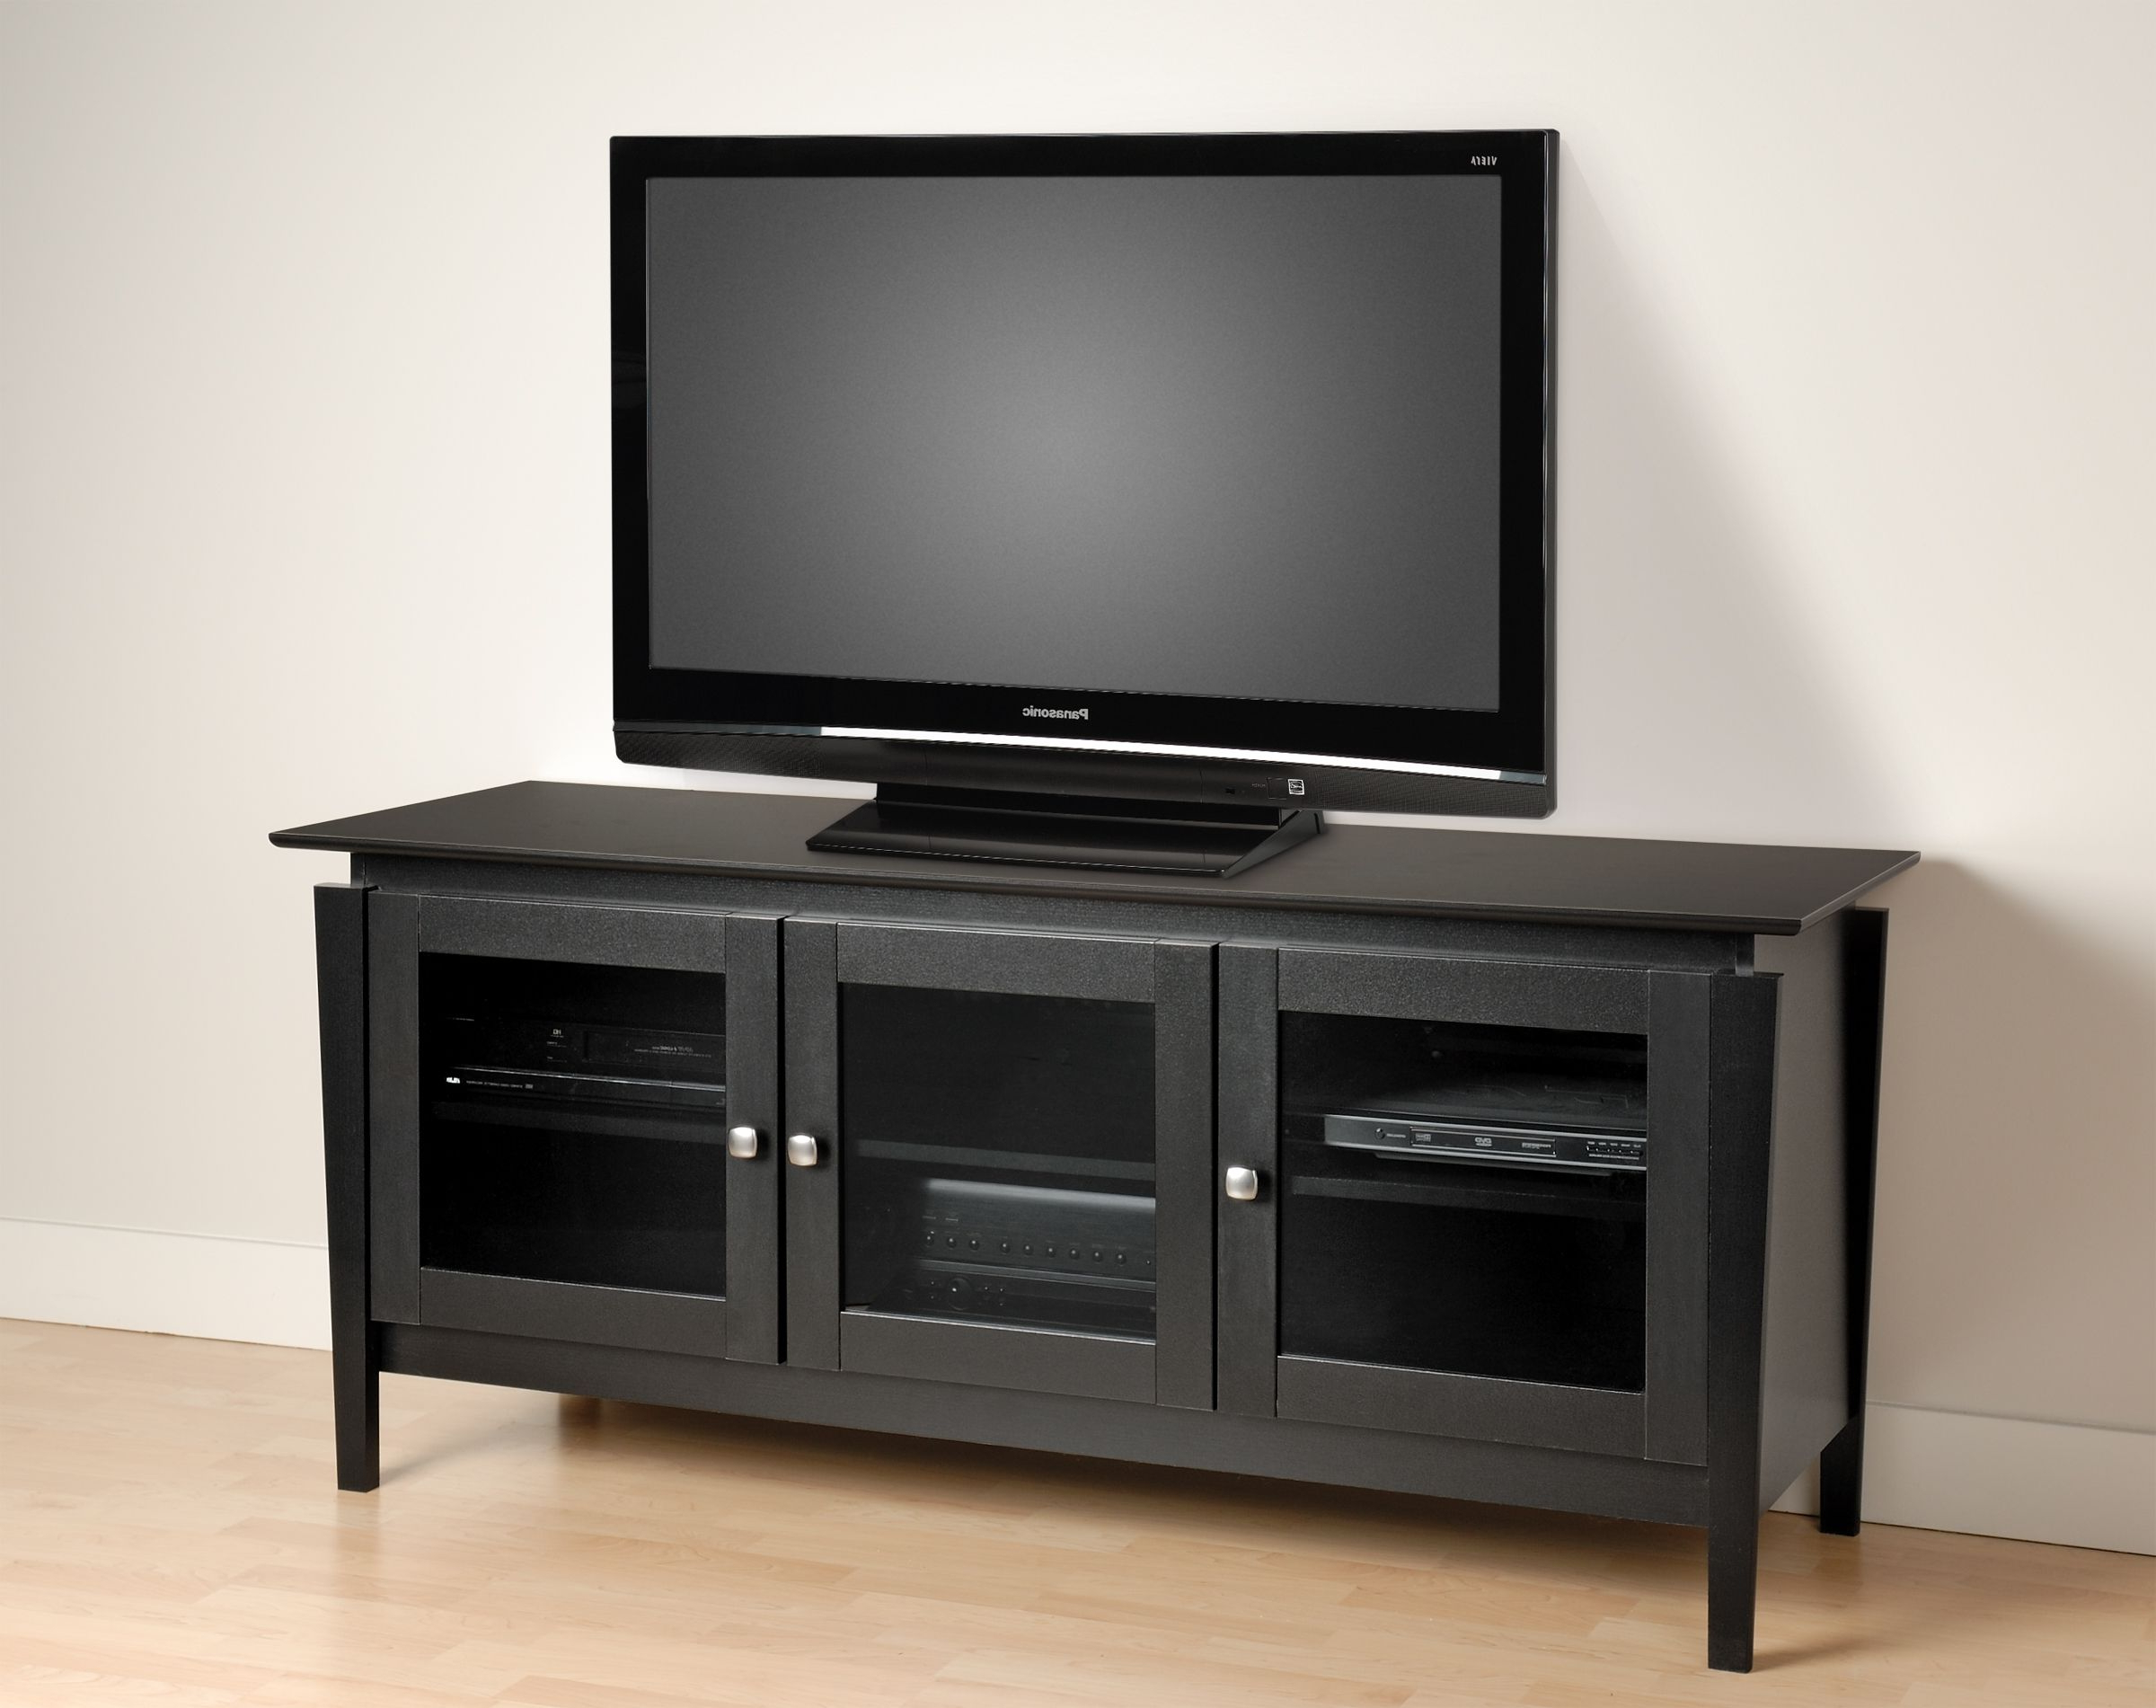 Black Tv Cabinets With Glass Doors (View 2 of 20)